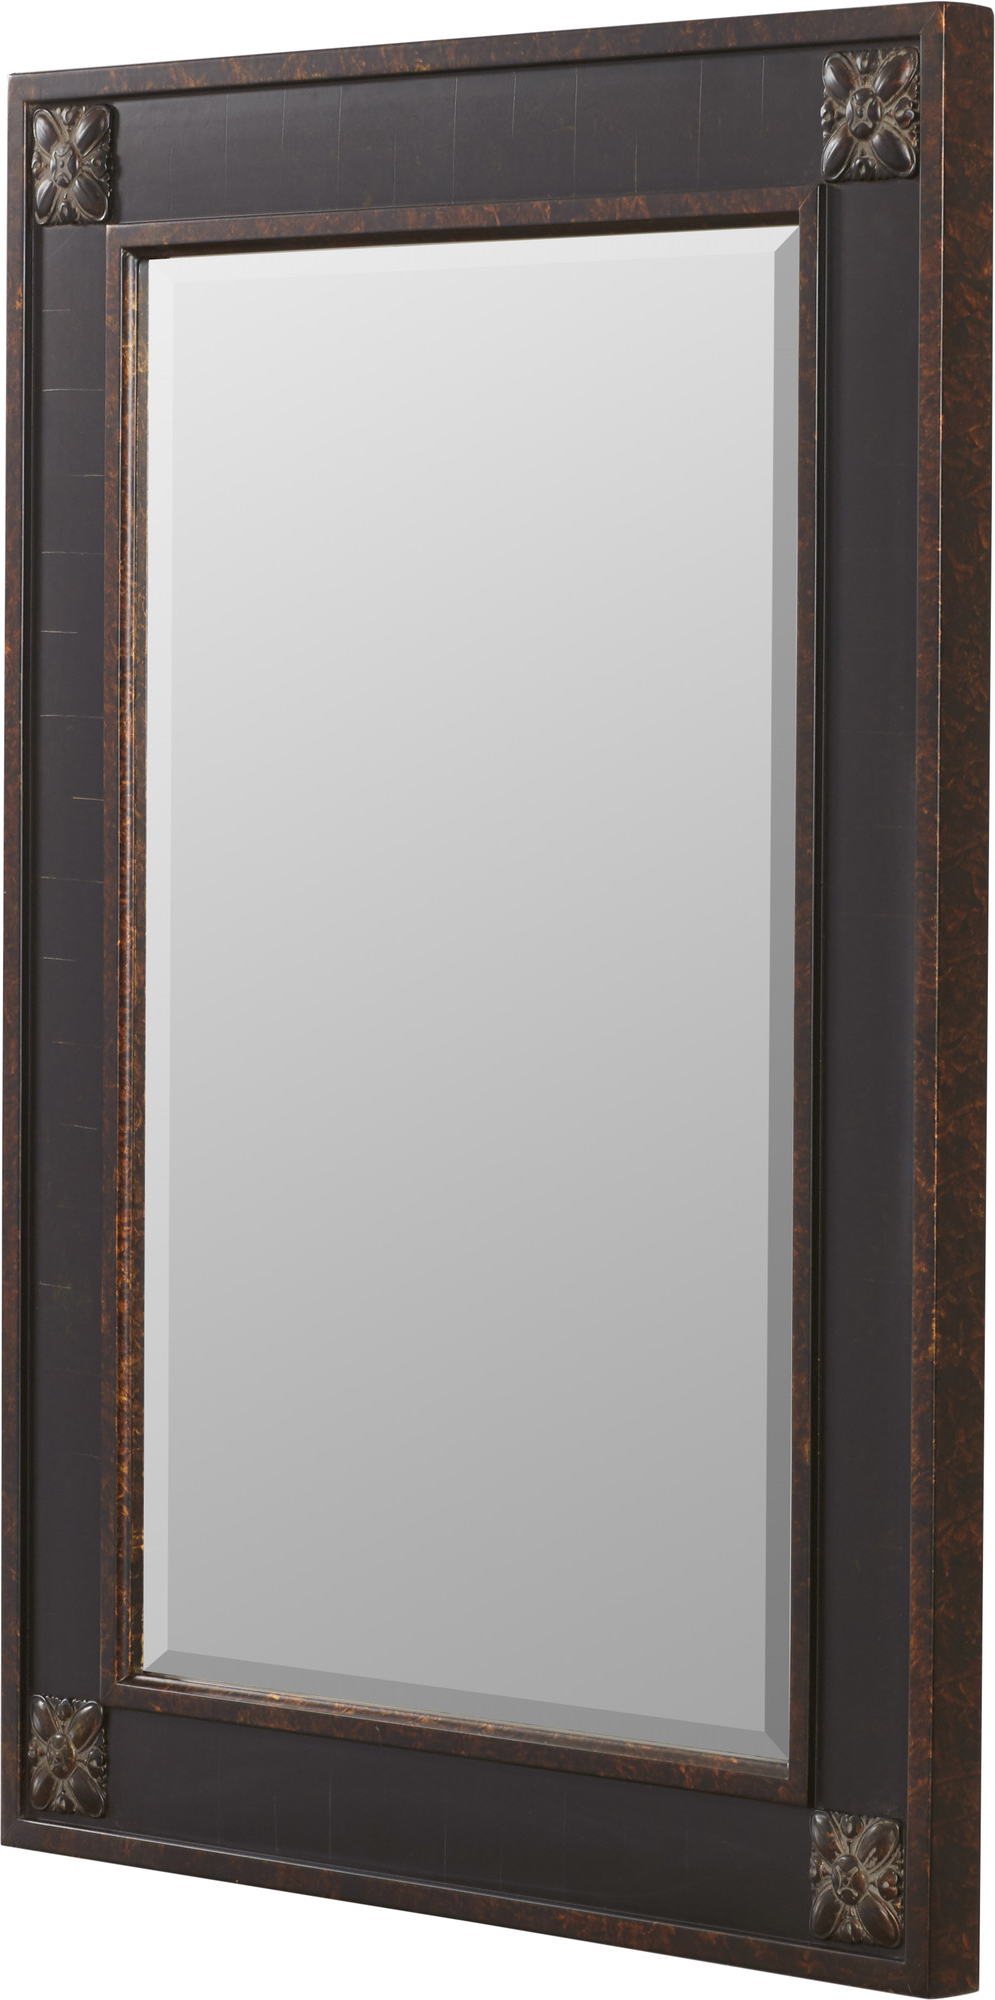 Details About Fleur De Lis Living Kristy Rectangular Beveled Vanity Mirror In Distressed Within Current Kristy Rectangular Beveled Vanity Mirrors In Distressed (View 2 of 20)